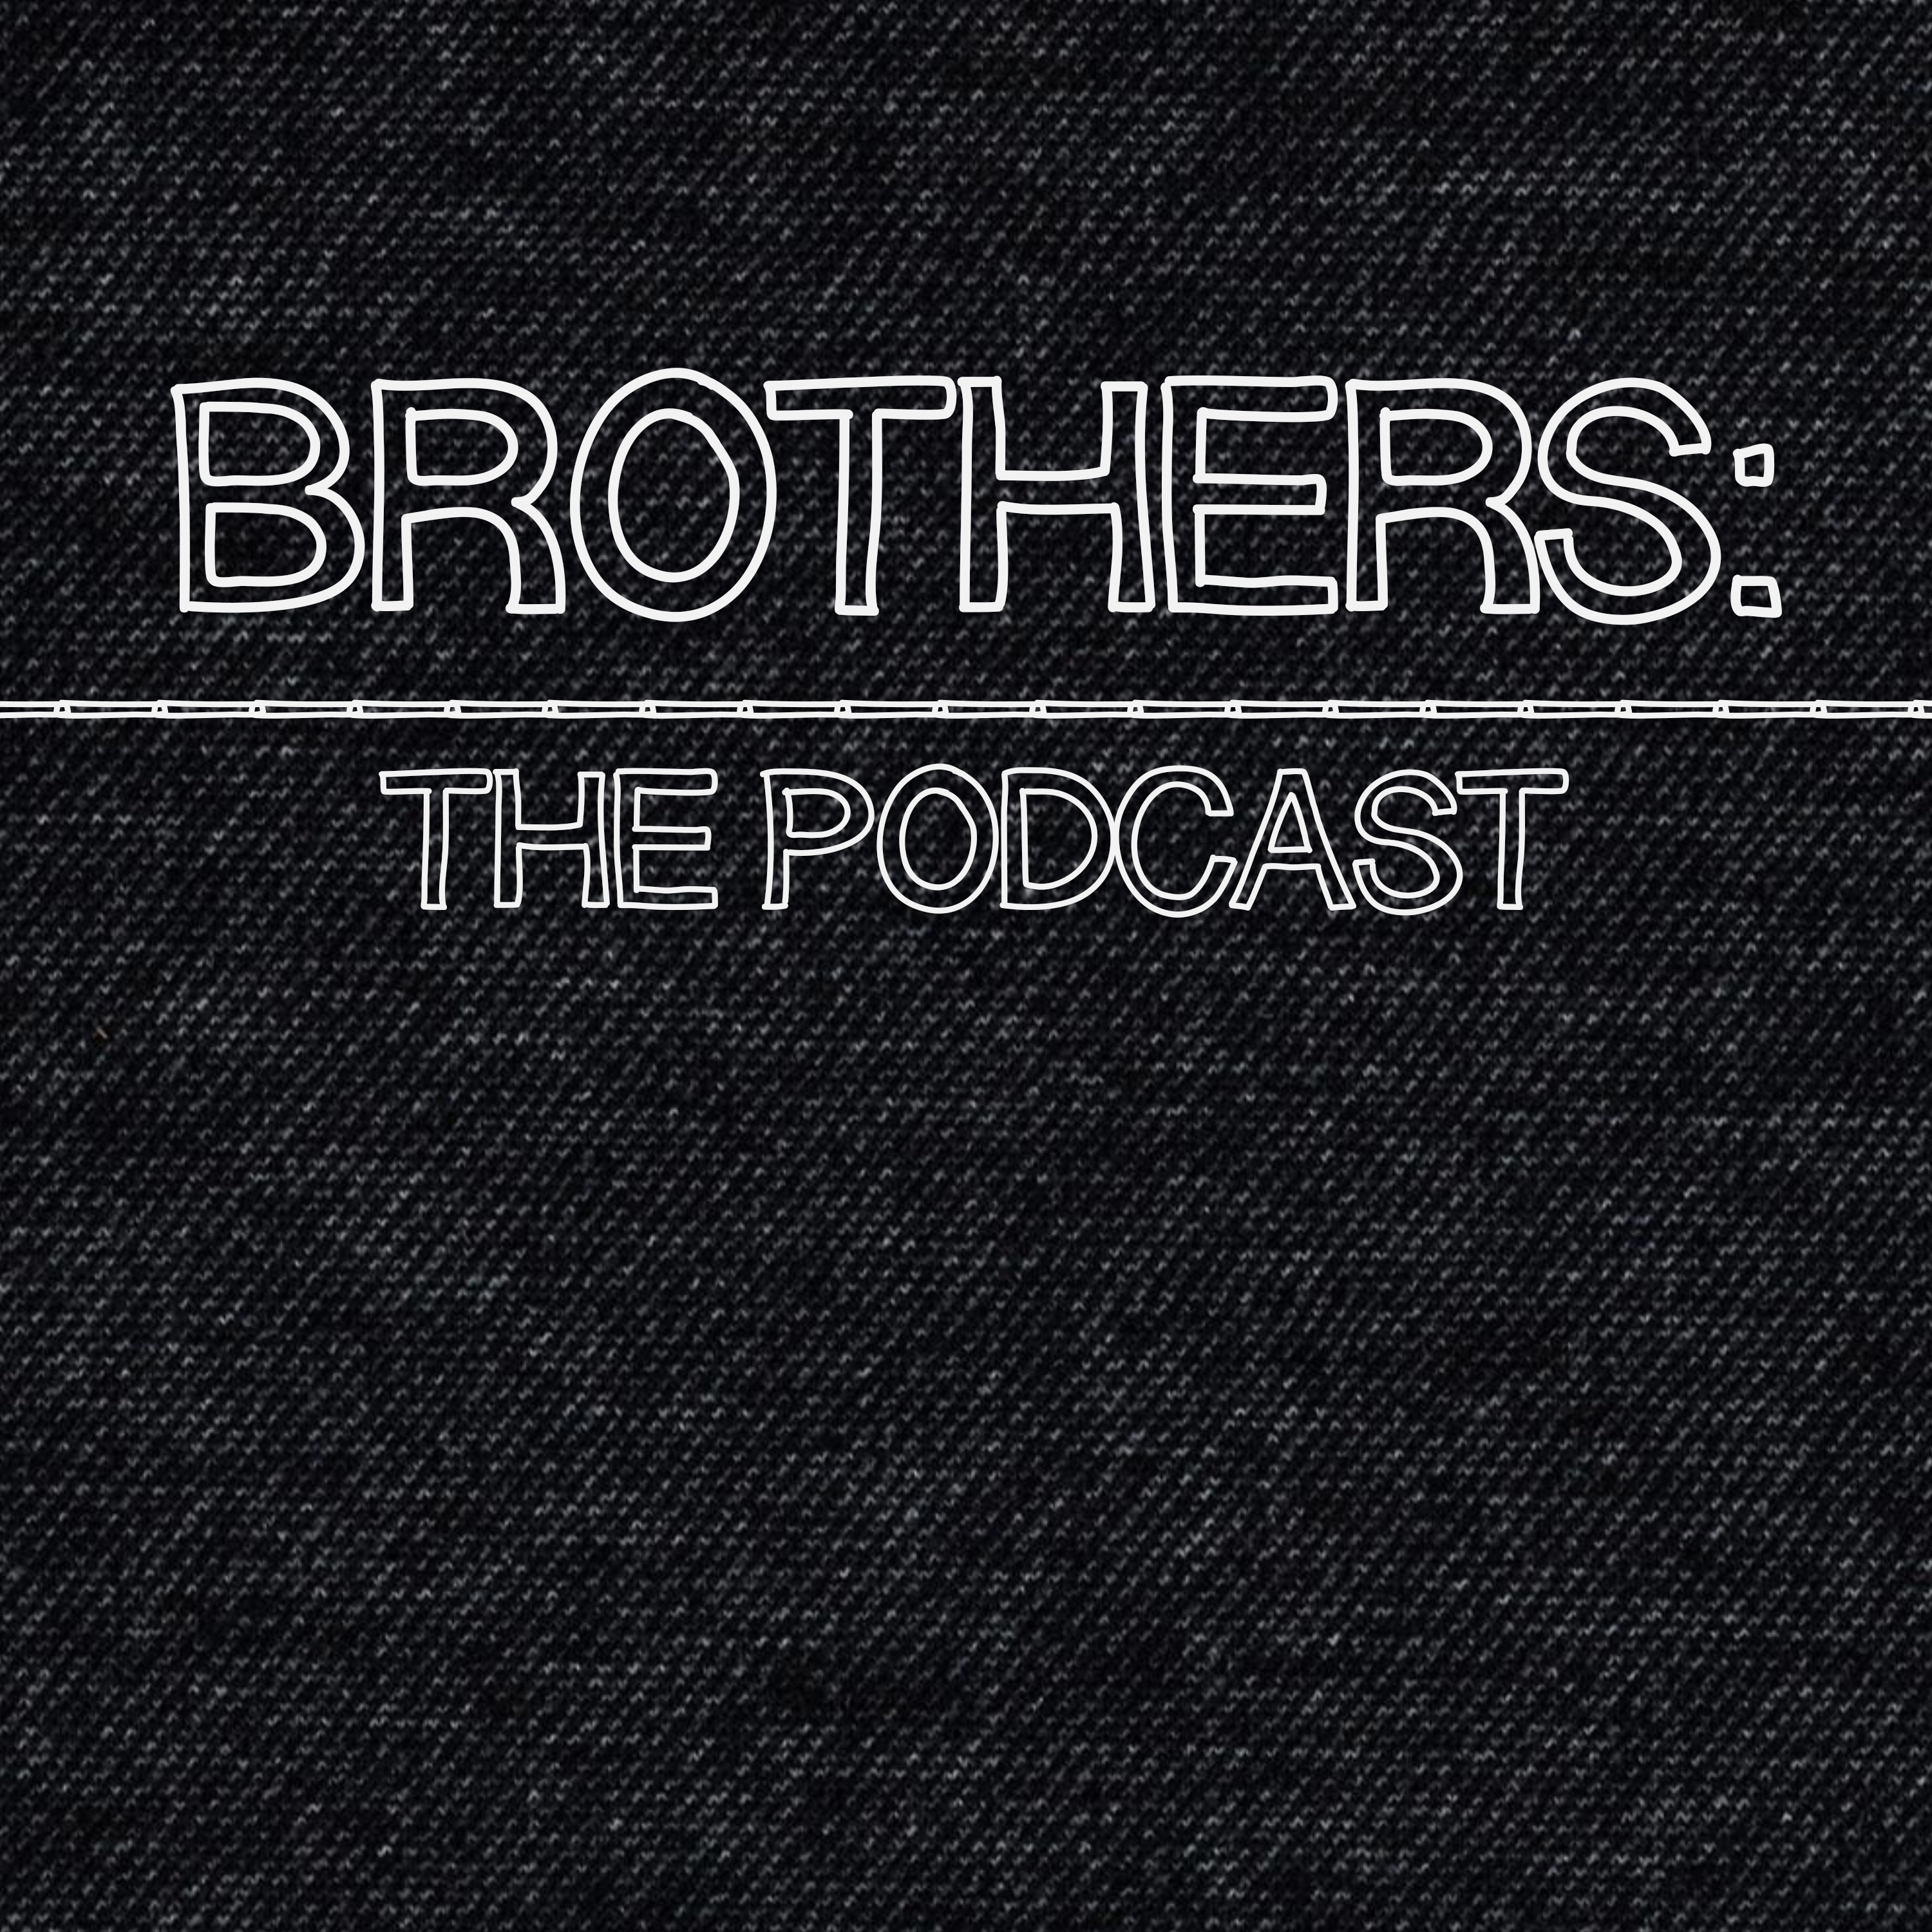 Brothers: The Podcast